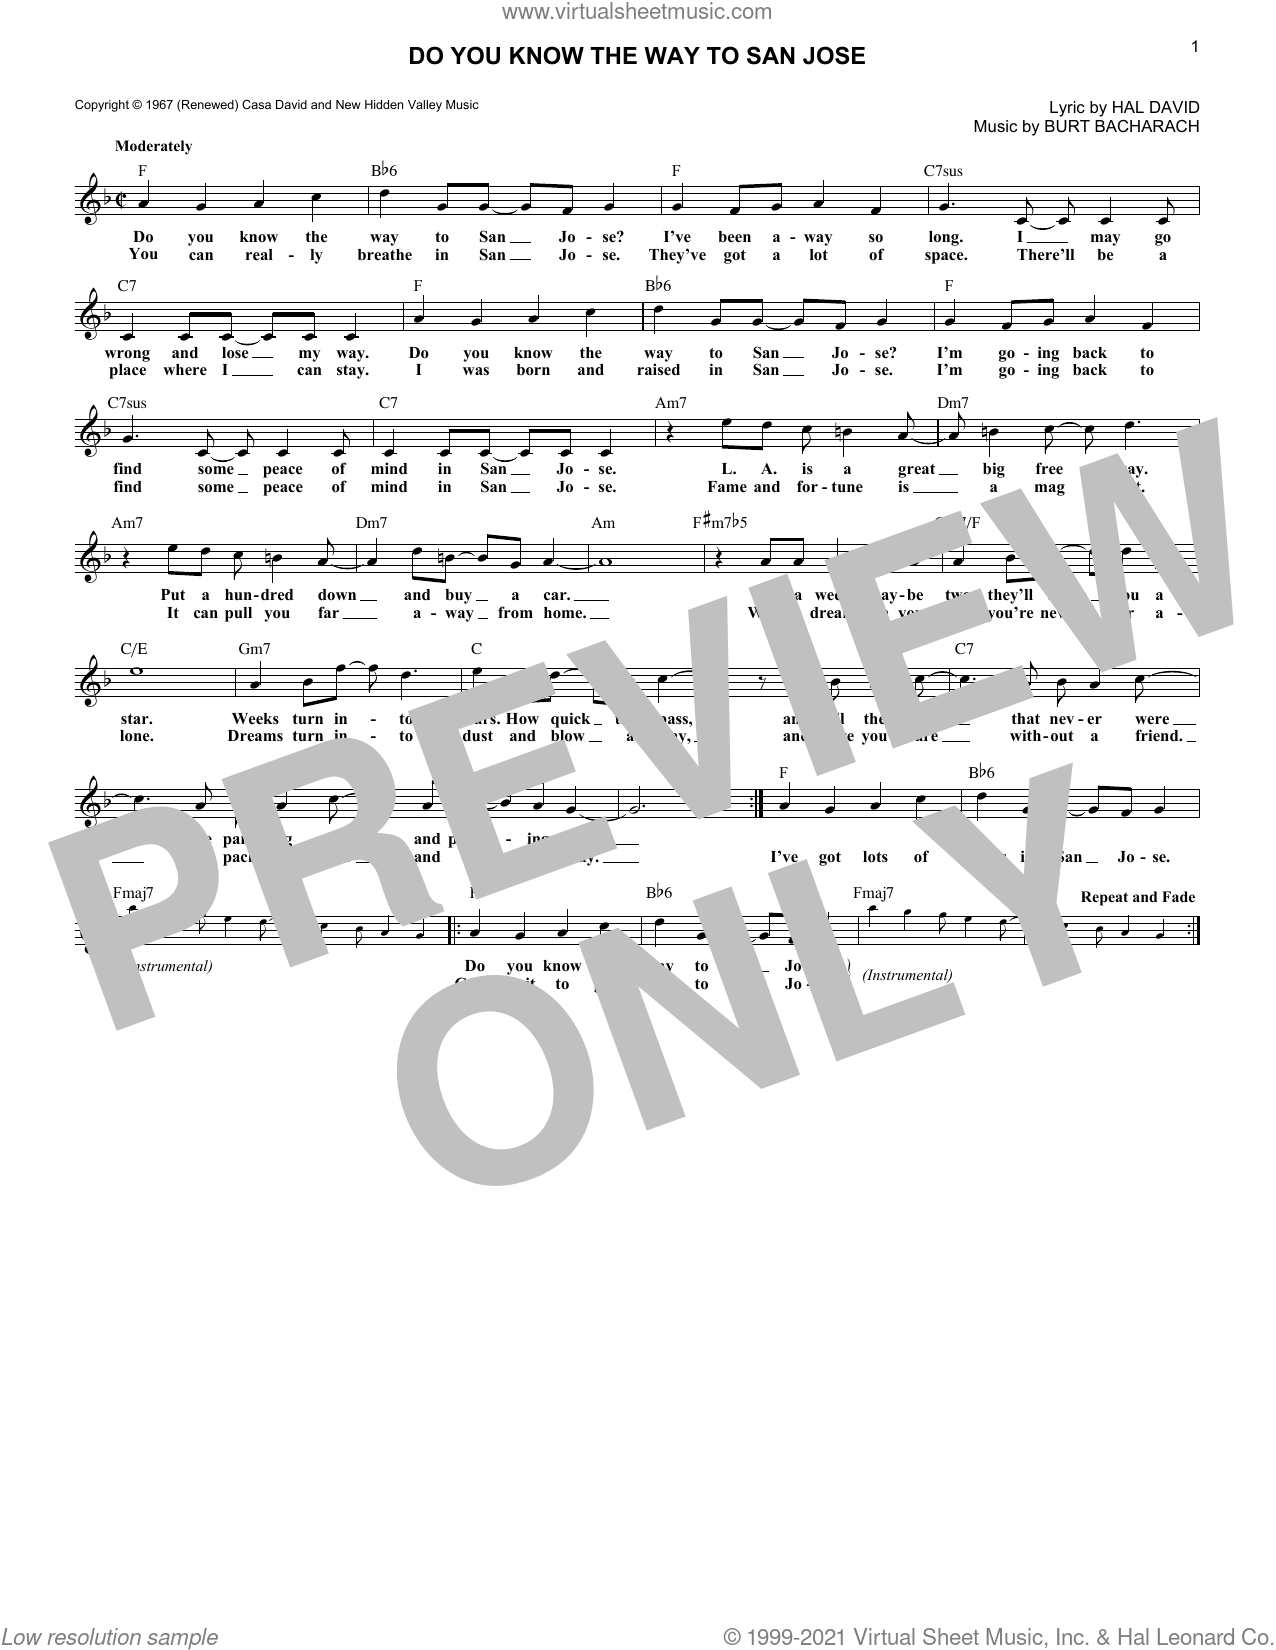 Do You Know The Way To San Jose sheet music for voice and other instruments (fake book) by Dionne Warwick, Burt Bacharach and Hal David, intermediate skill level